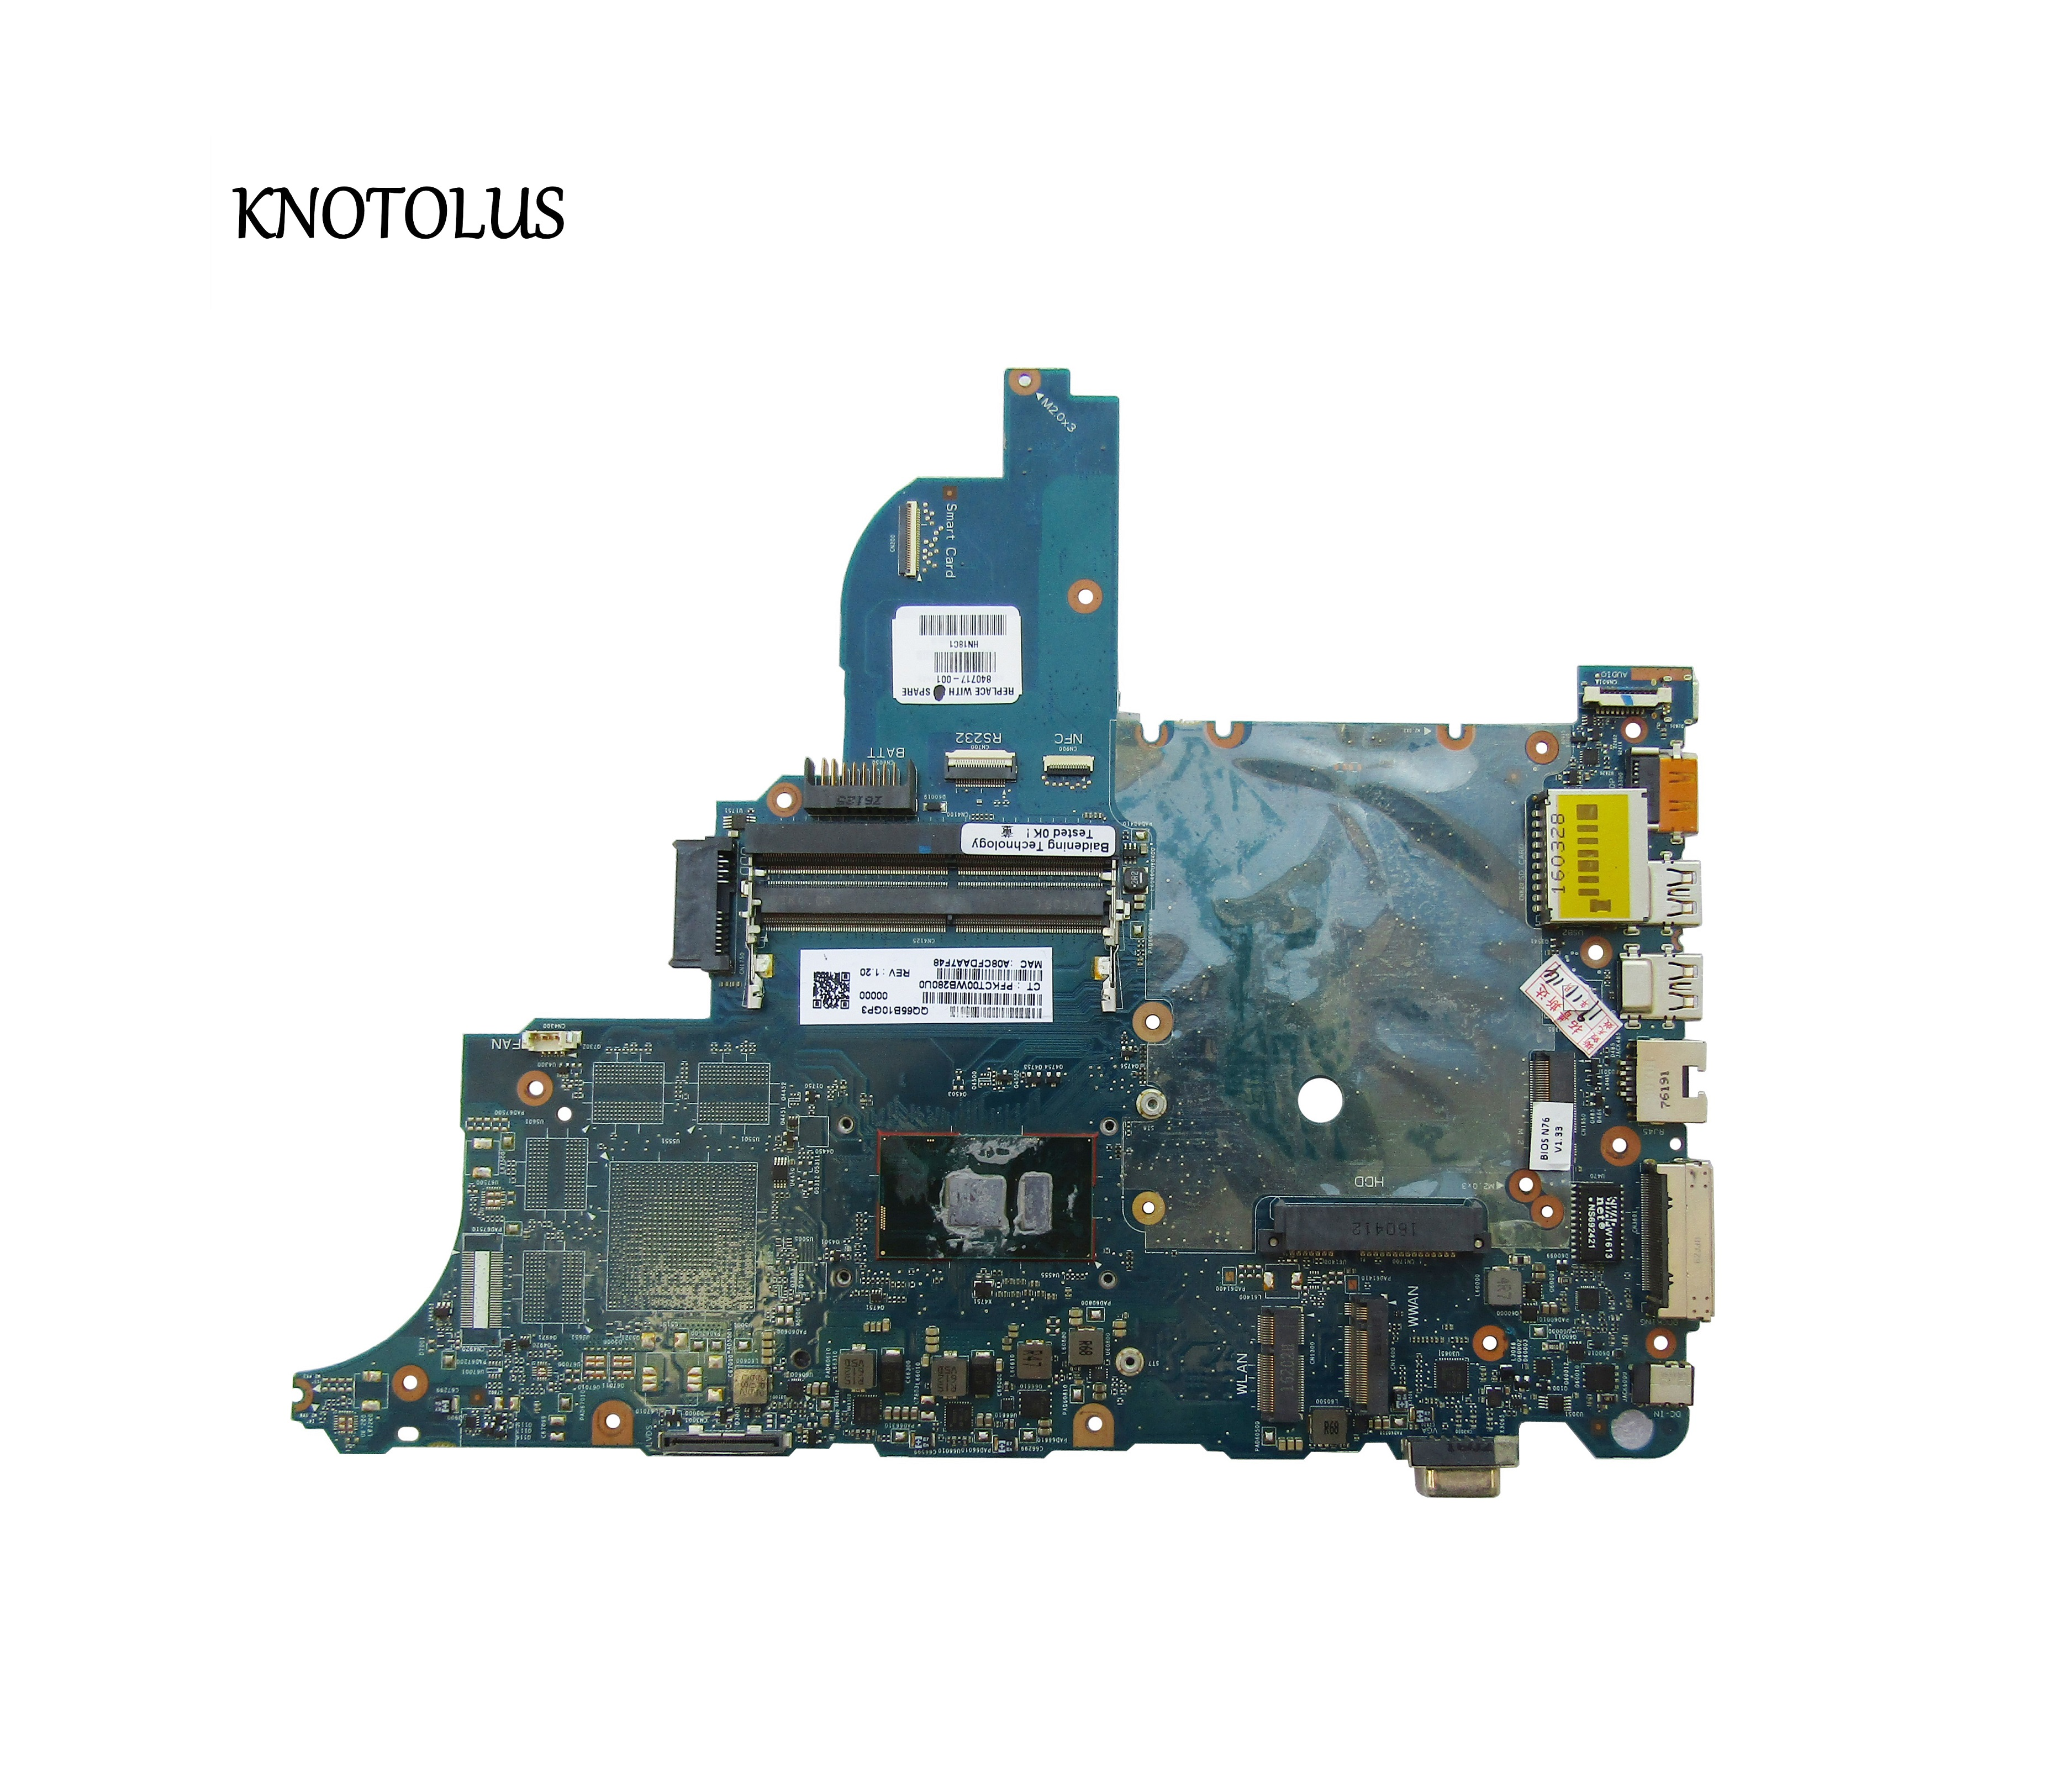 840717-001 840717-501 840717-601 For HP Probook 640-G2 <font><b>650</b></font> G2 Laptop motherboard 6050A2723701-MB-A02 SR2F0 <font><b>I5</b></font>-6300U CPU image